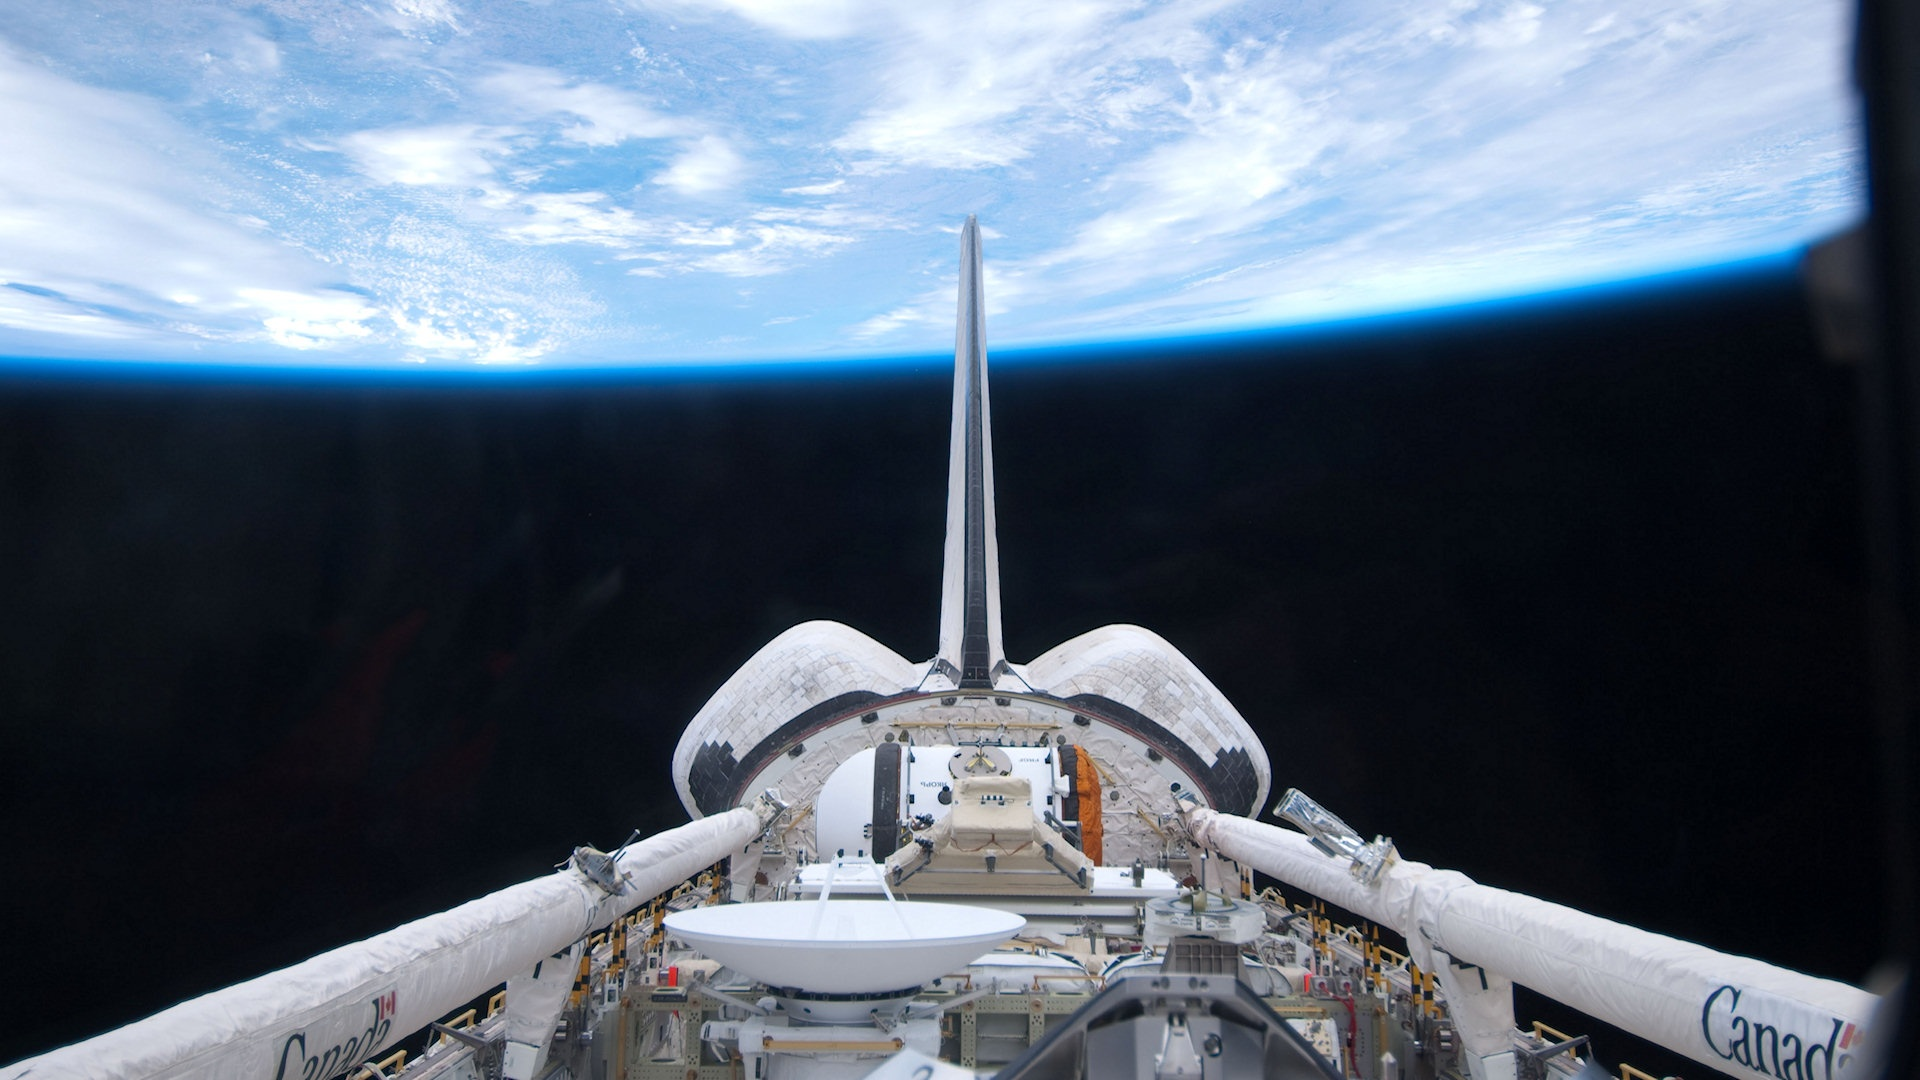 hd space shuttle in space - photo #15